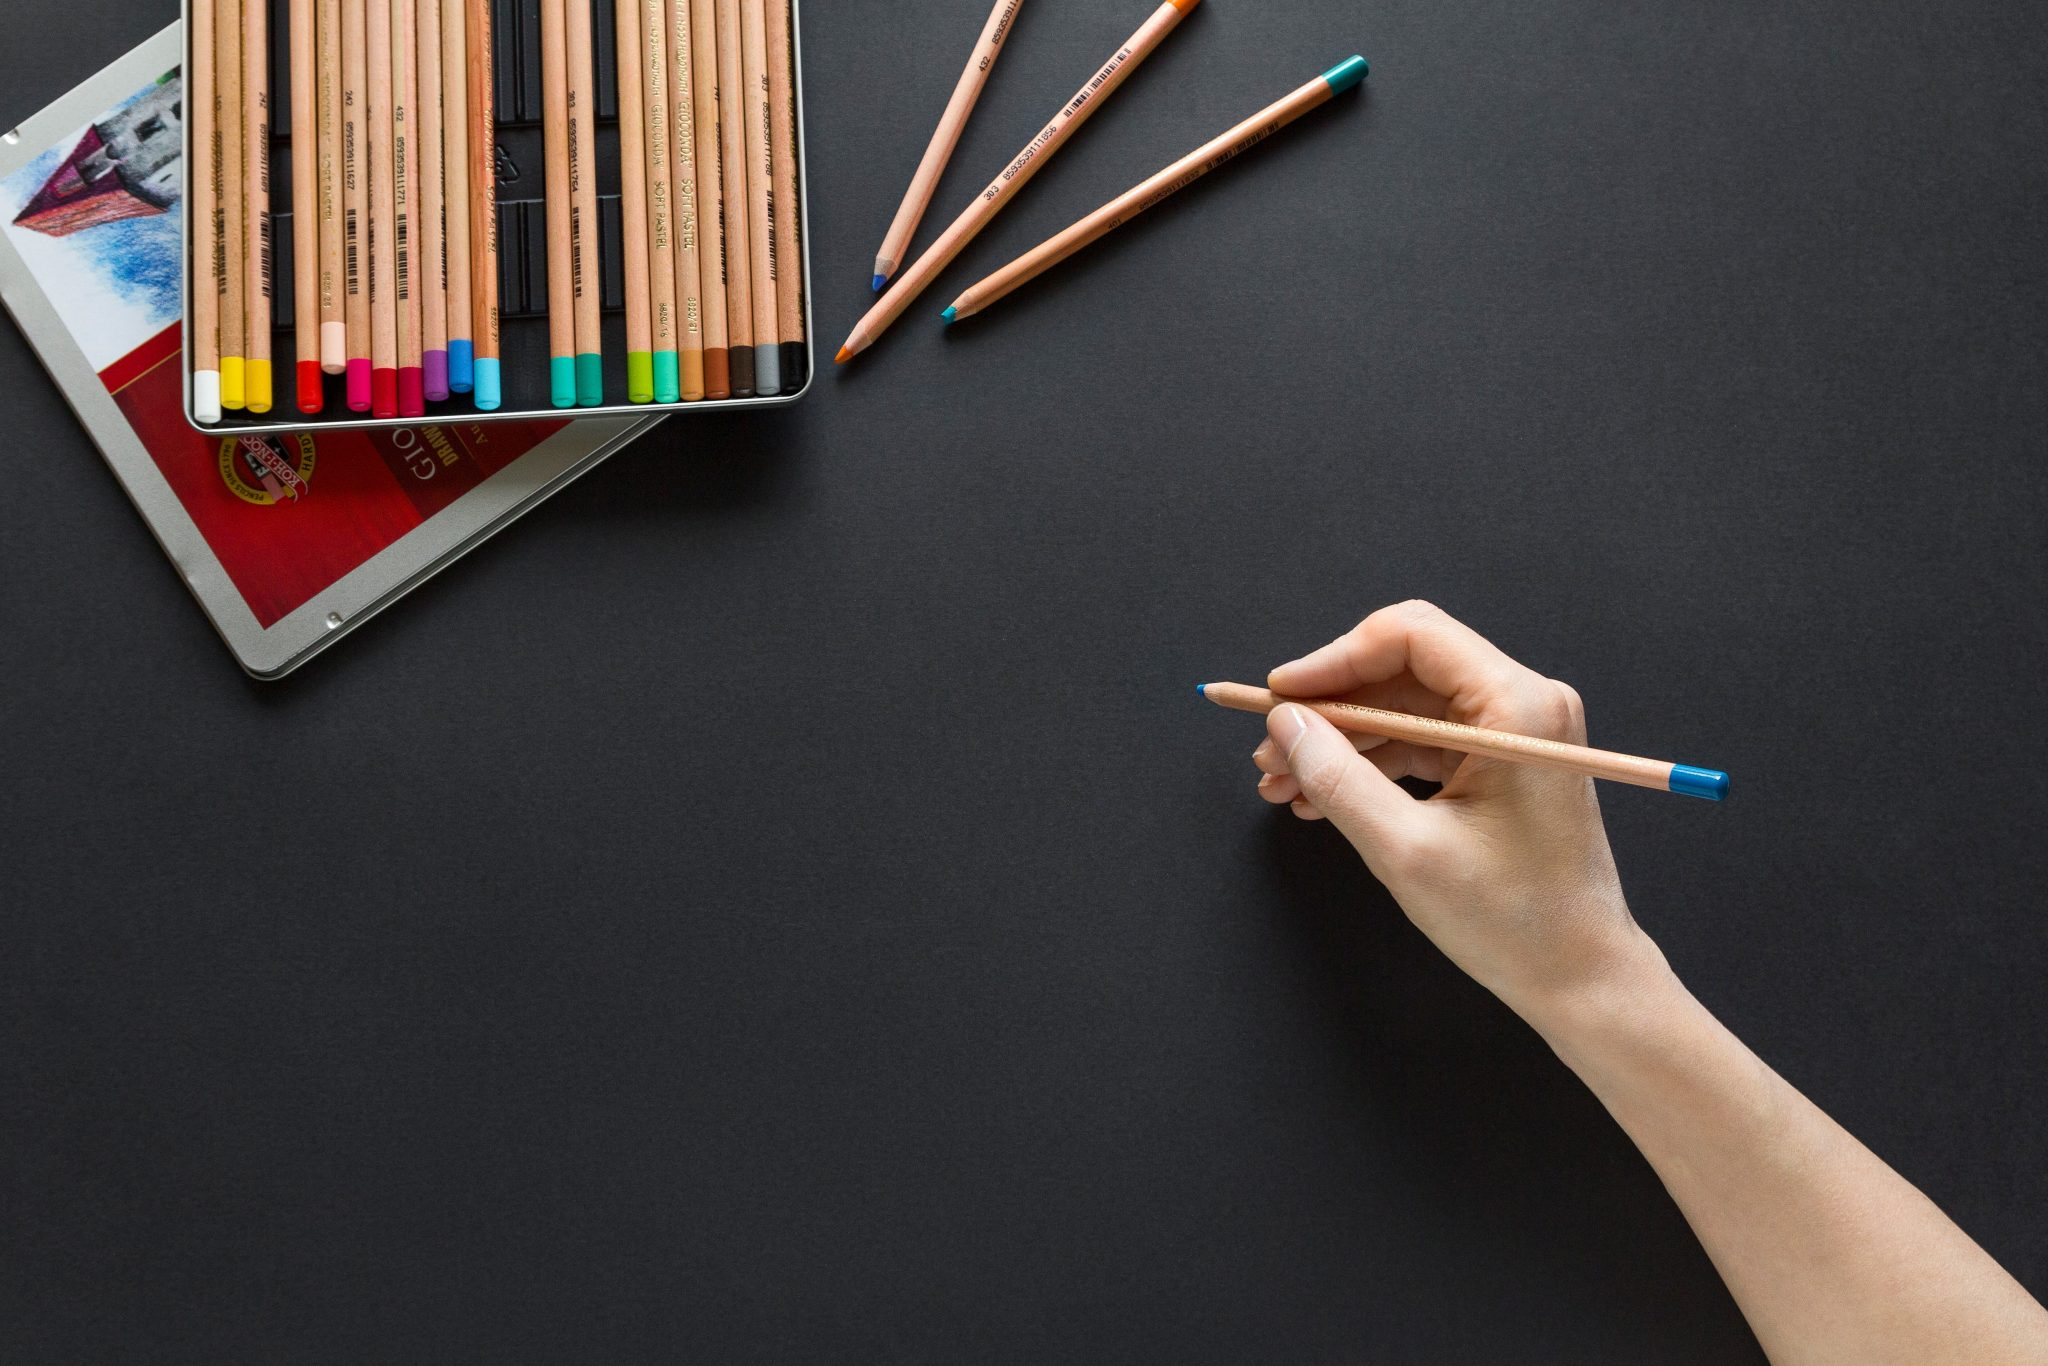 Pencils #Be Creative #Steps to take after losing your job #Grandomly